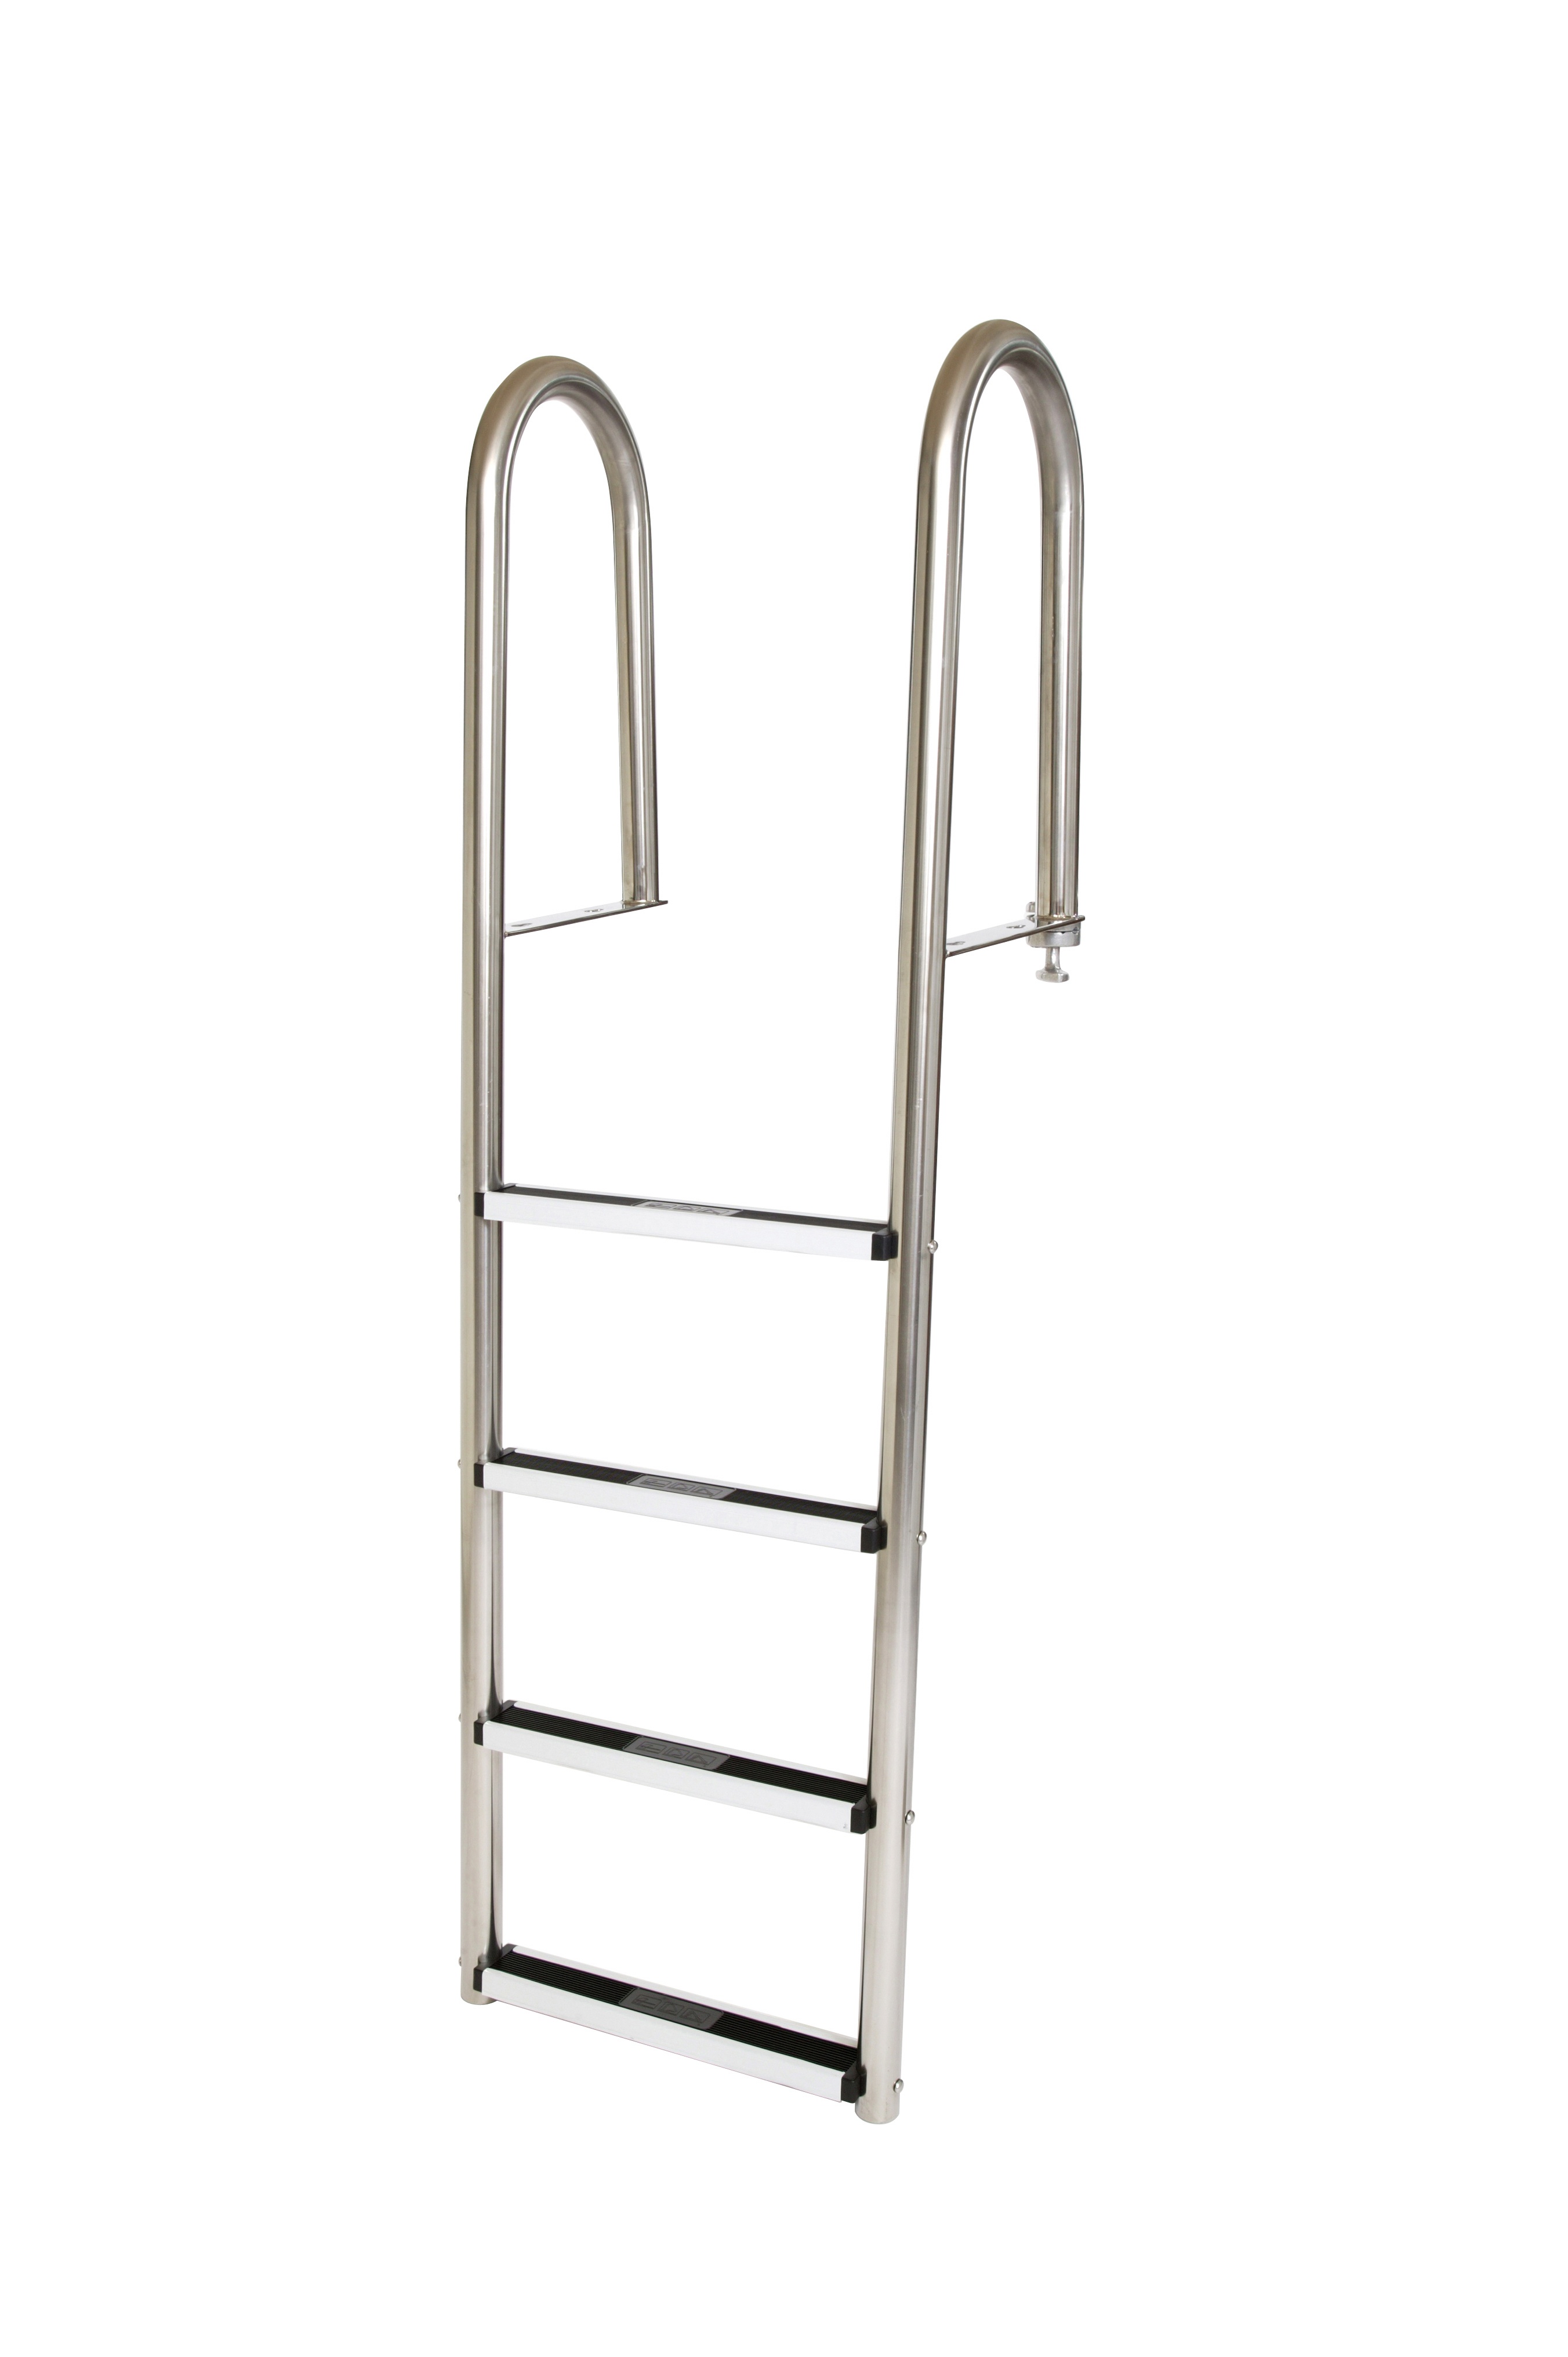 Ladder clipart pool ladder. Dock ladders official s